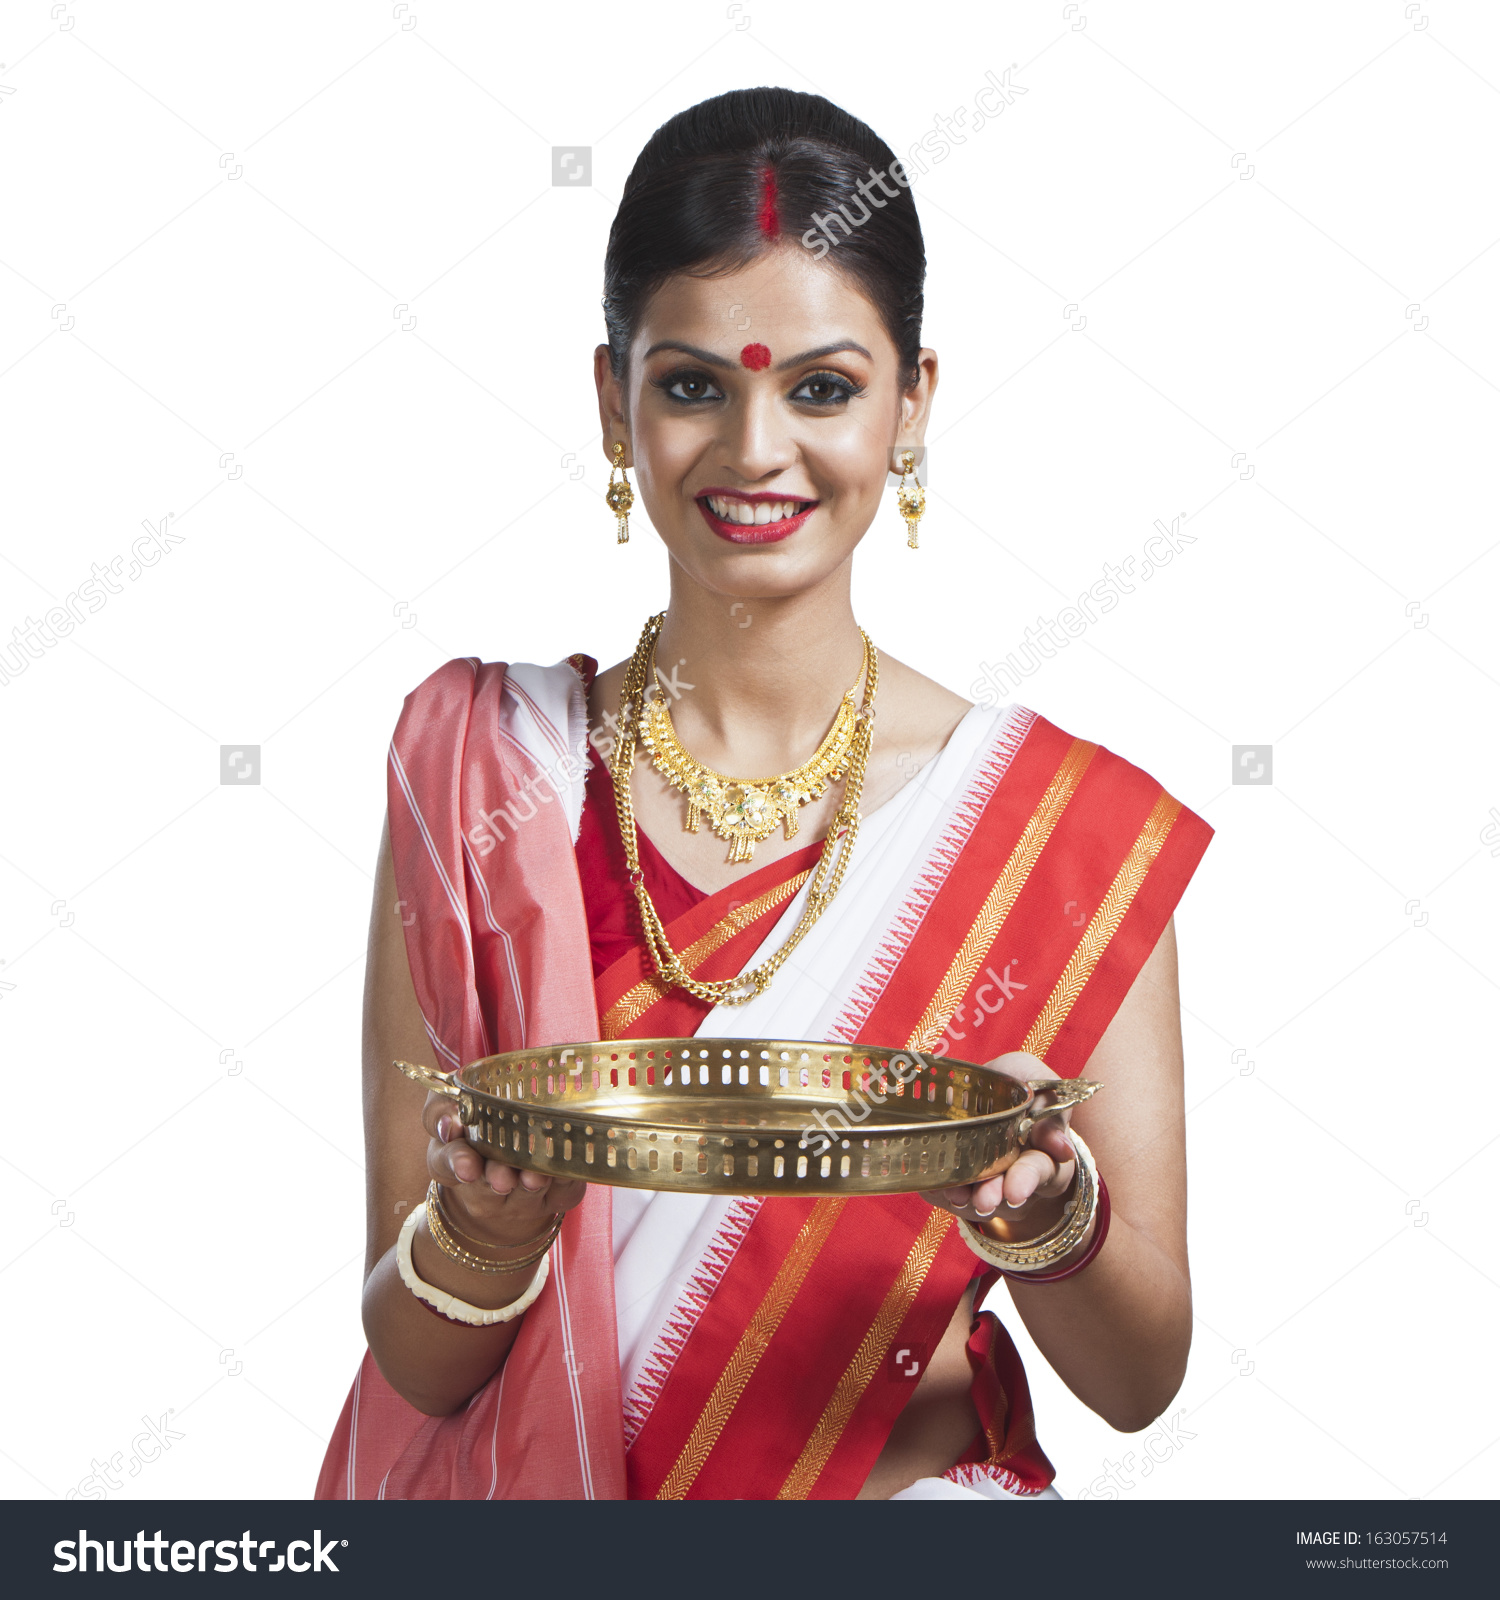 Bengali traditional dress clipart black and white download Bengali Traditional Dress Clipart black and white download